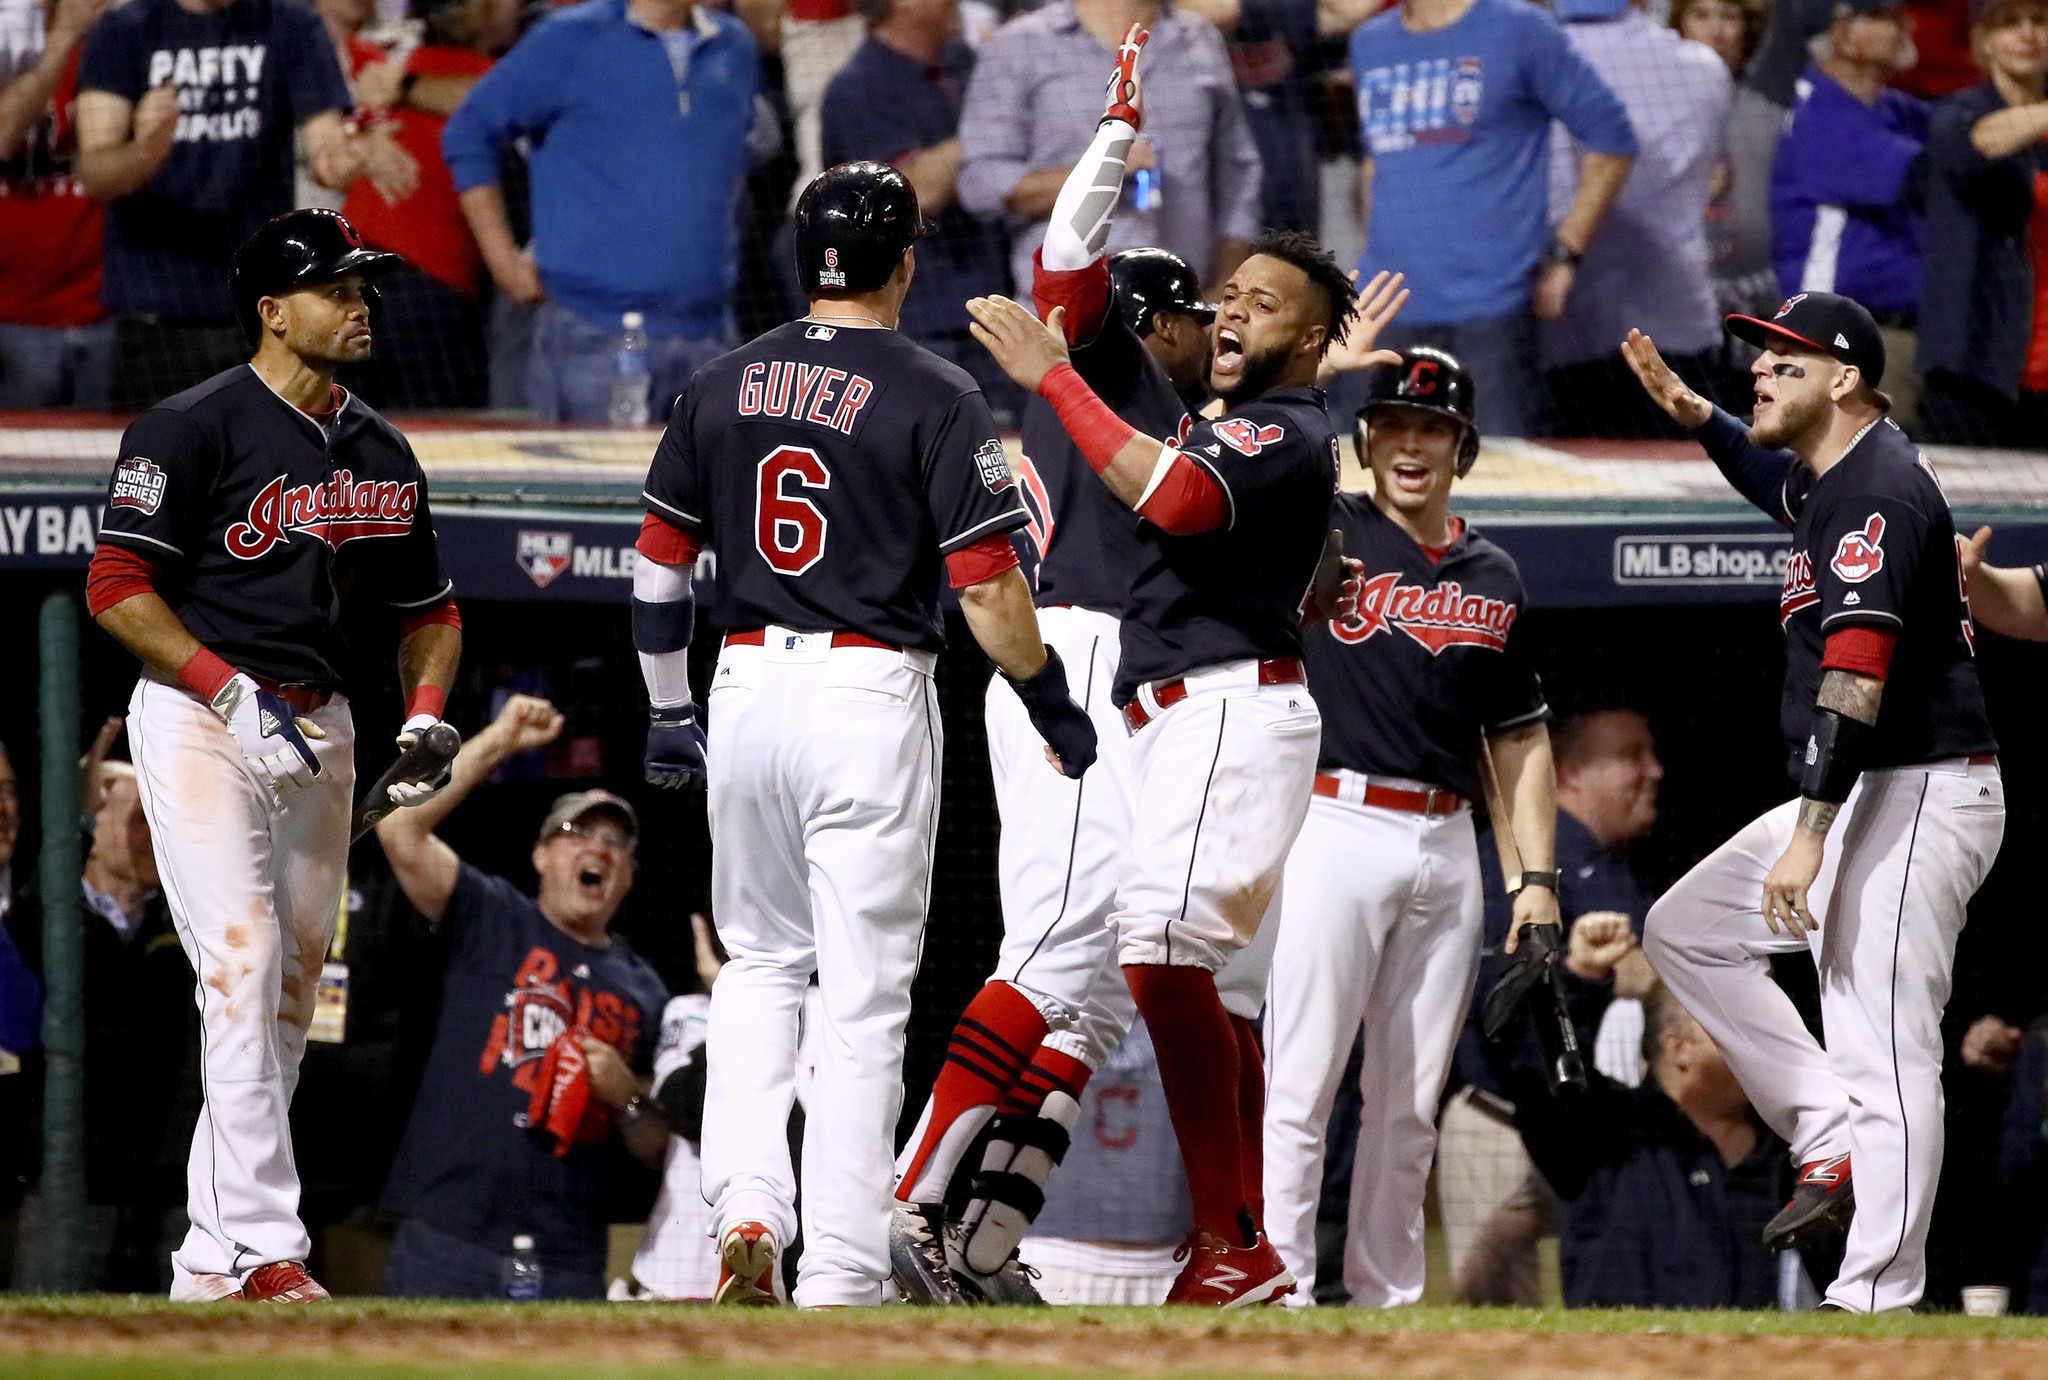 ee8b06fa Instead of donating, MLB will just destroy wrong-winner Indians gear -  RedEye Chicago